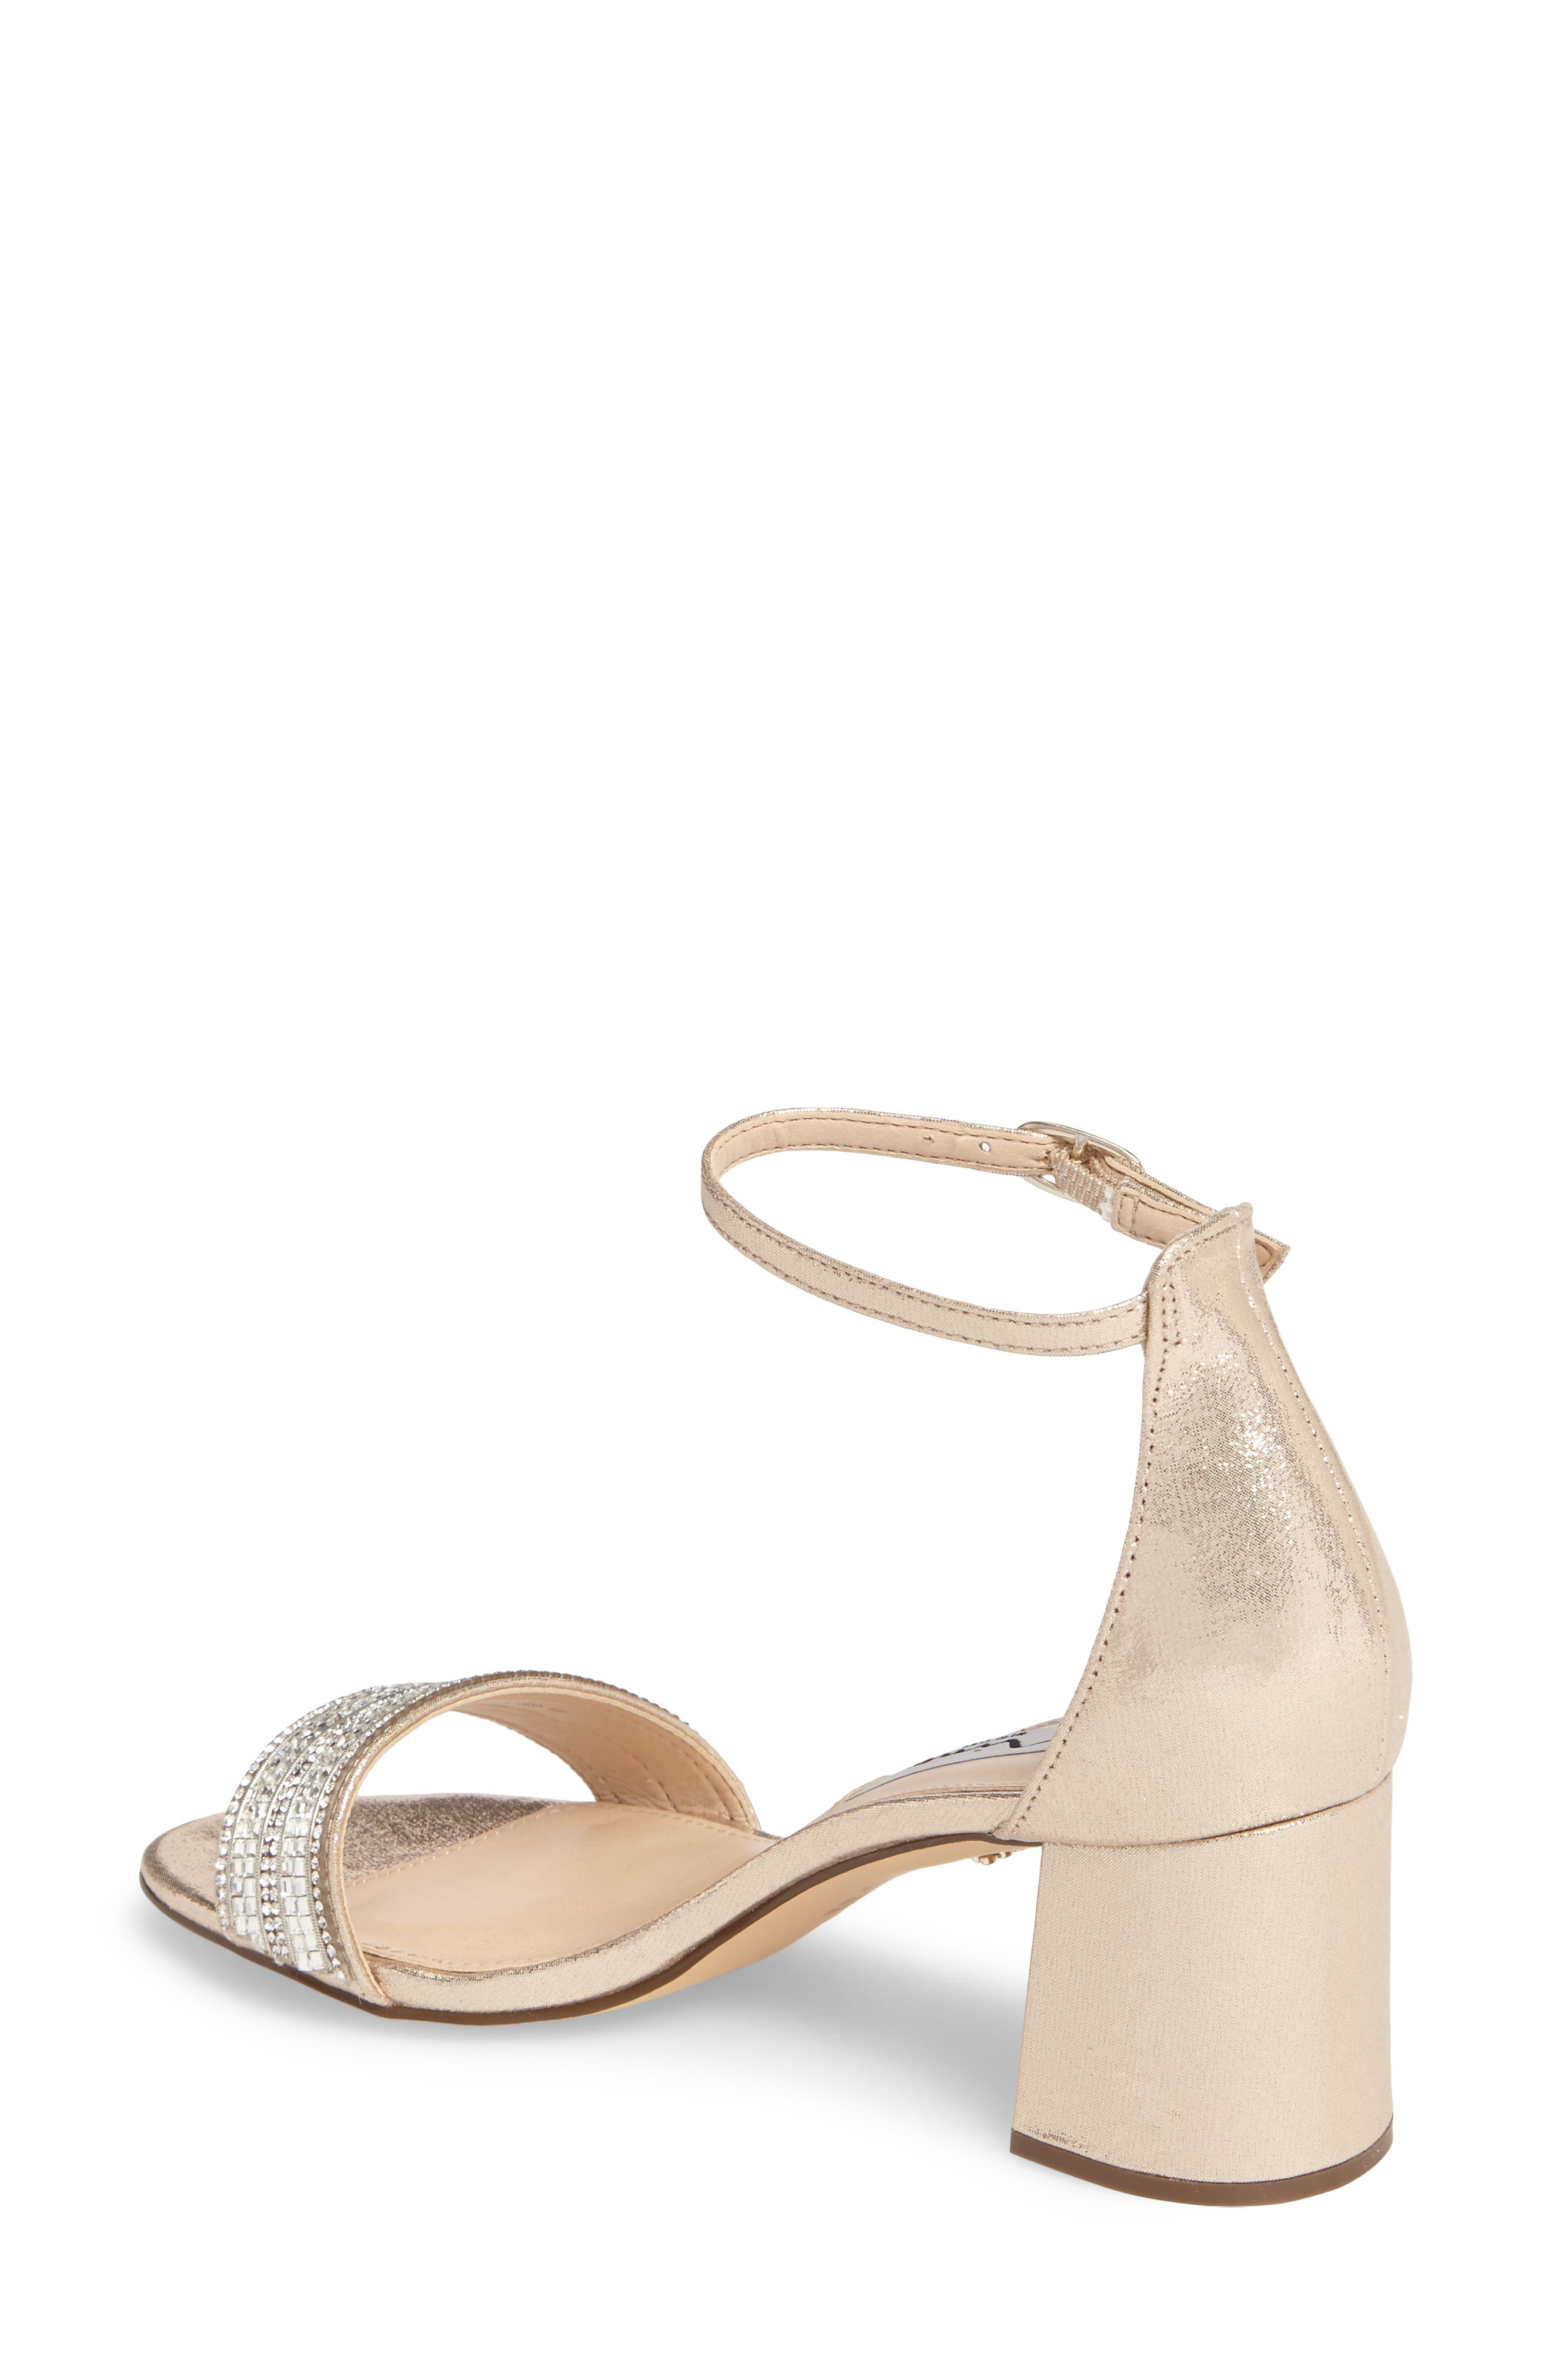 Elenora Sandal,                             Alternate thumbnail 2, color,                             Taupe Suede